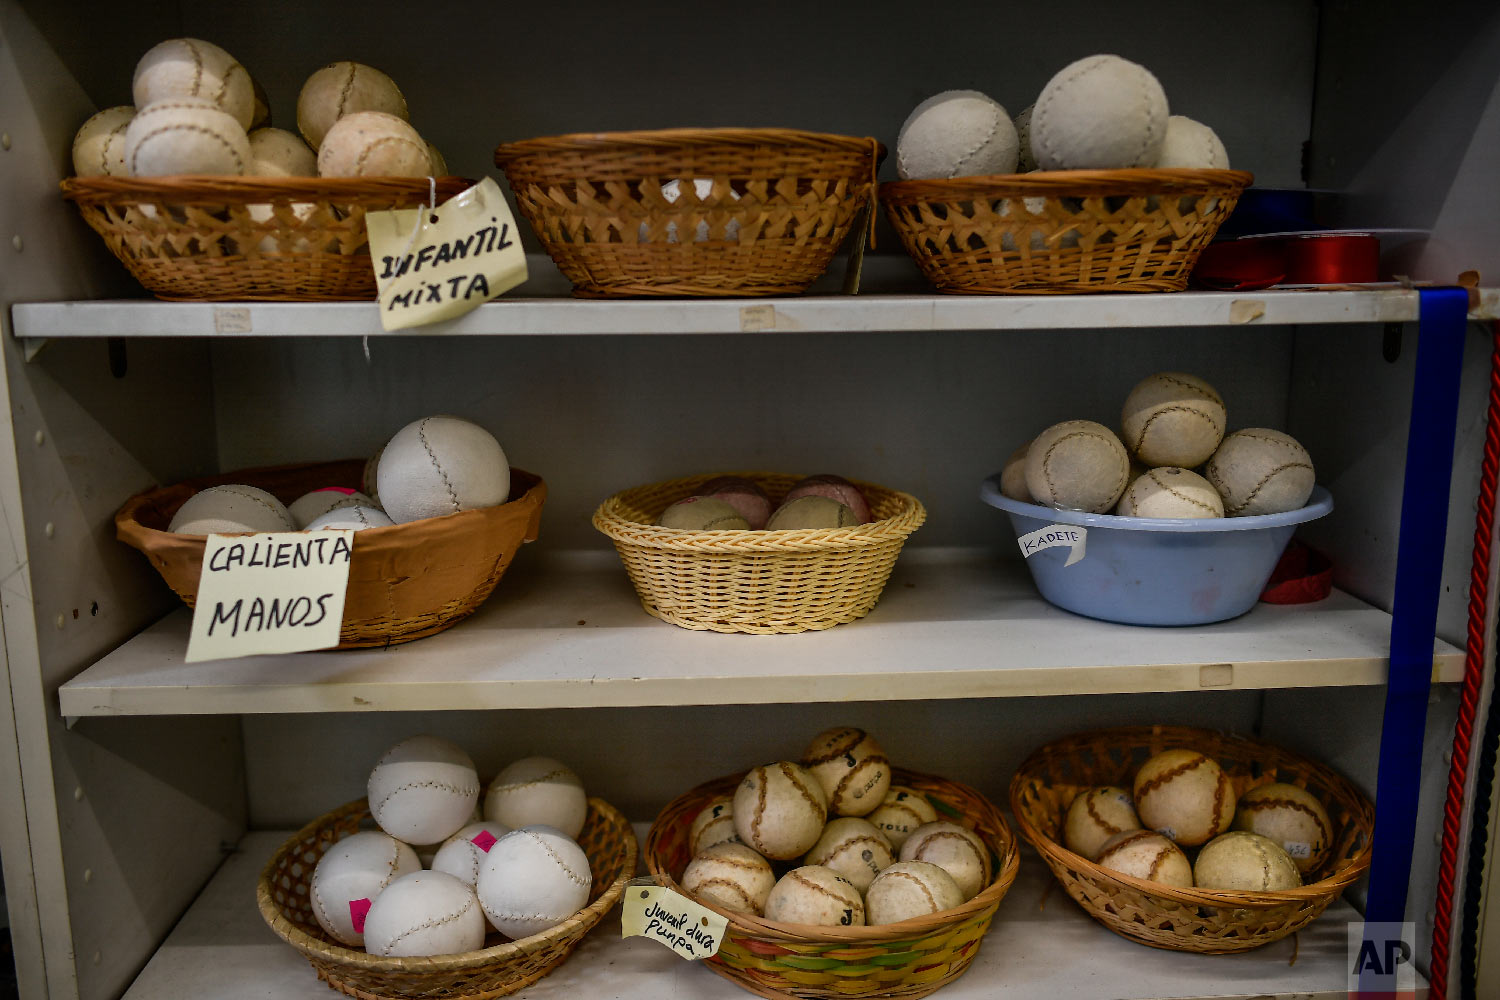 Different models of Basque balls are displayed for sale at a store in Pamplona, northern Spain on Feb. 28, 2019. (AP Photo/Alvaro Barrientos)